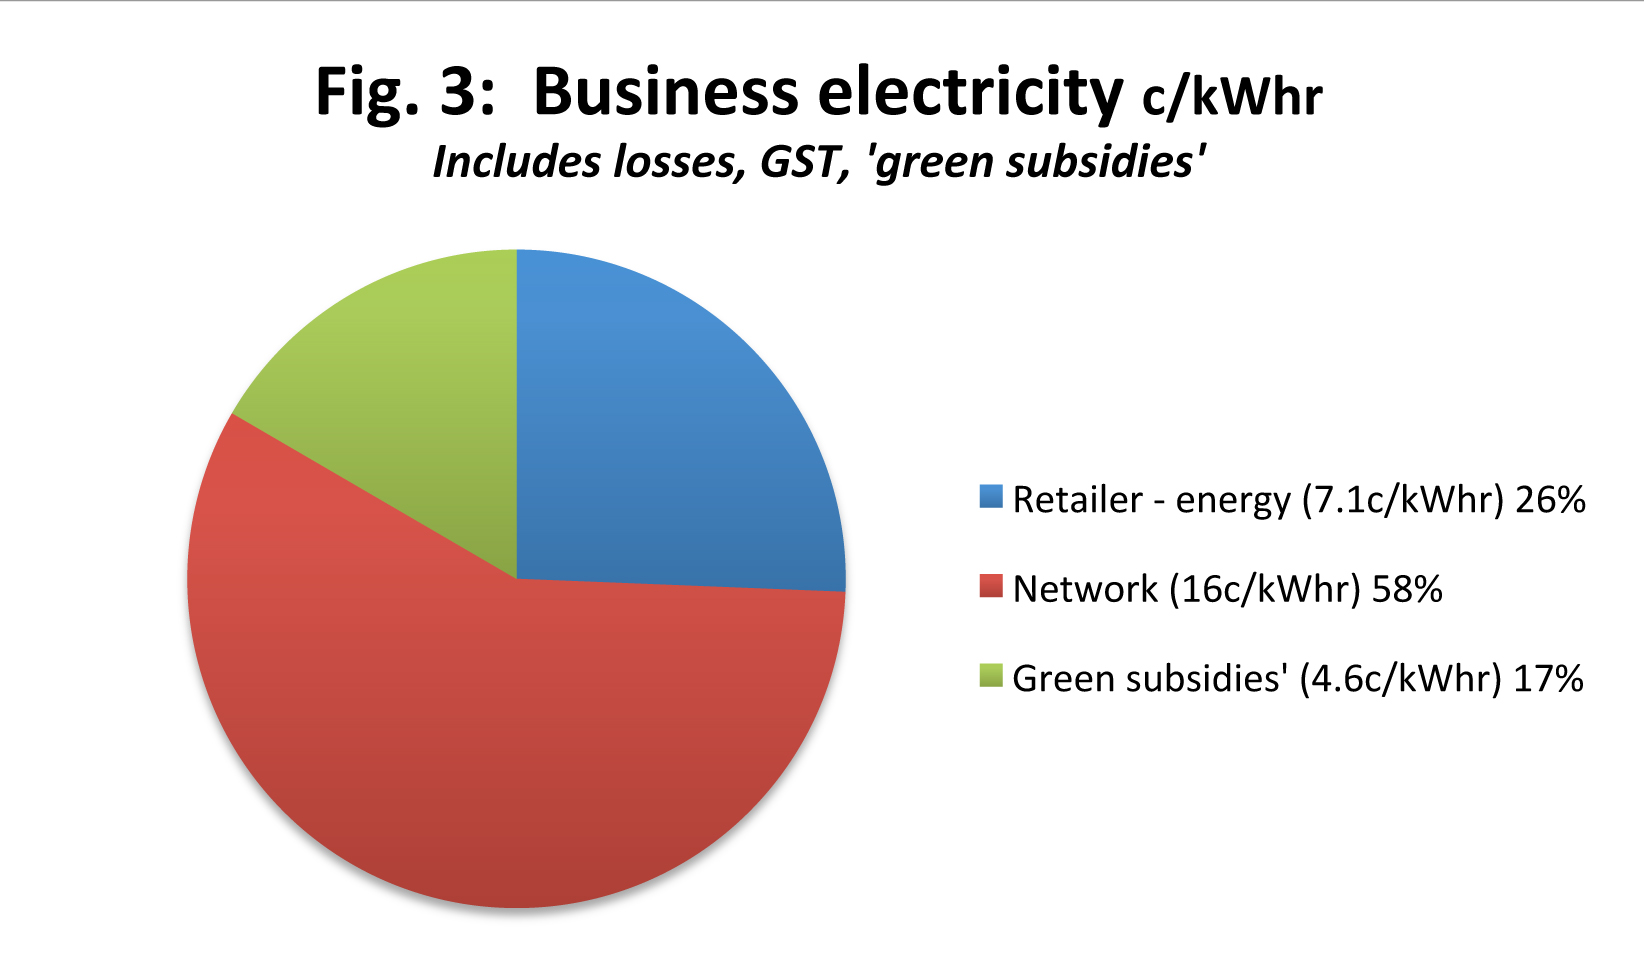 Business electricity costs